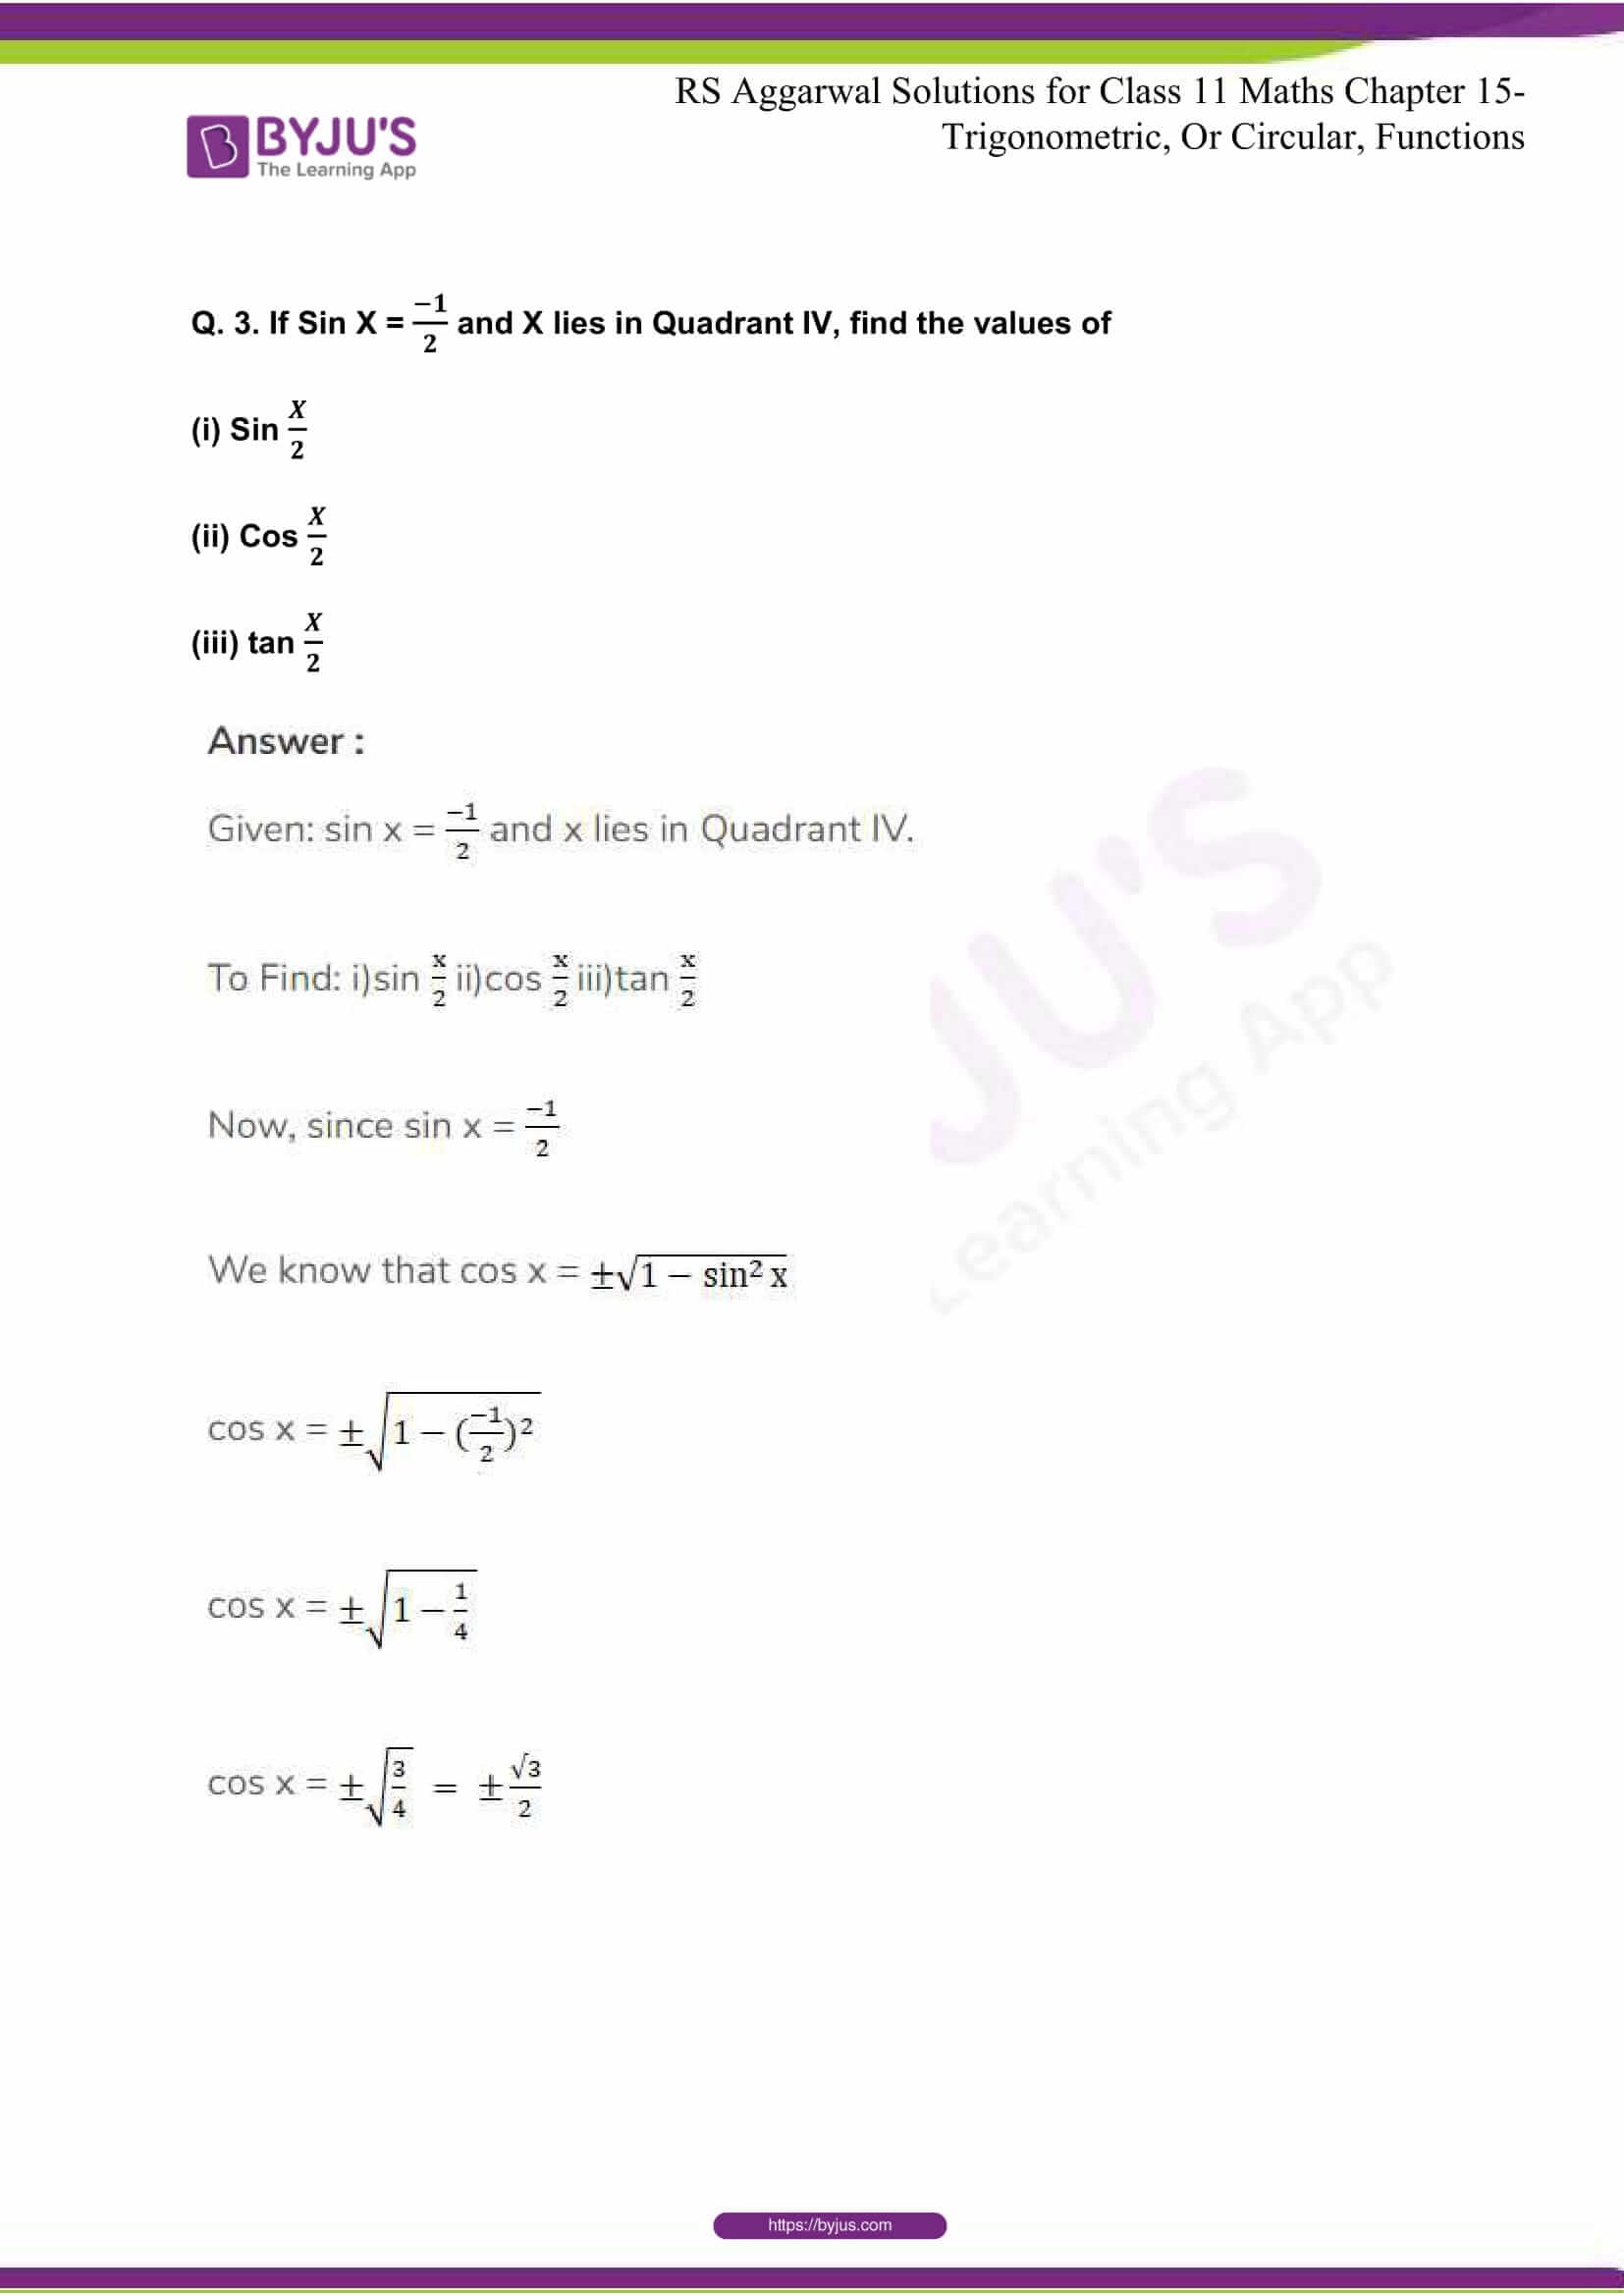 rsaggarwal solutions class 11 maths chapter 15 118